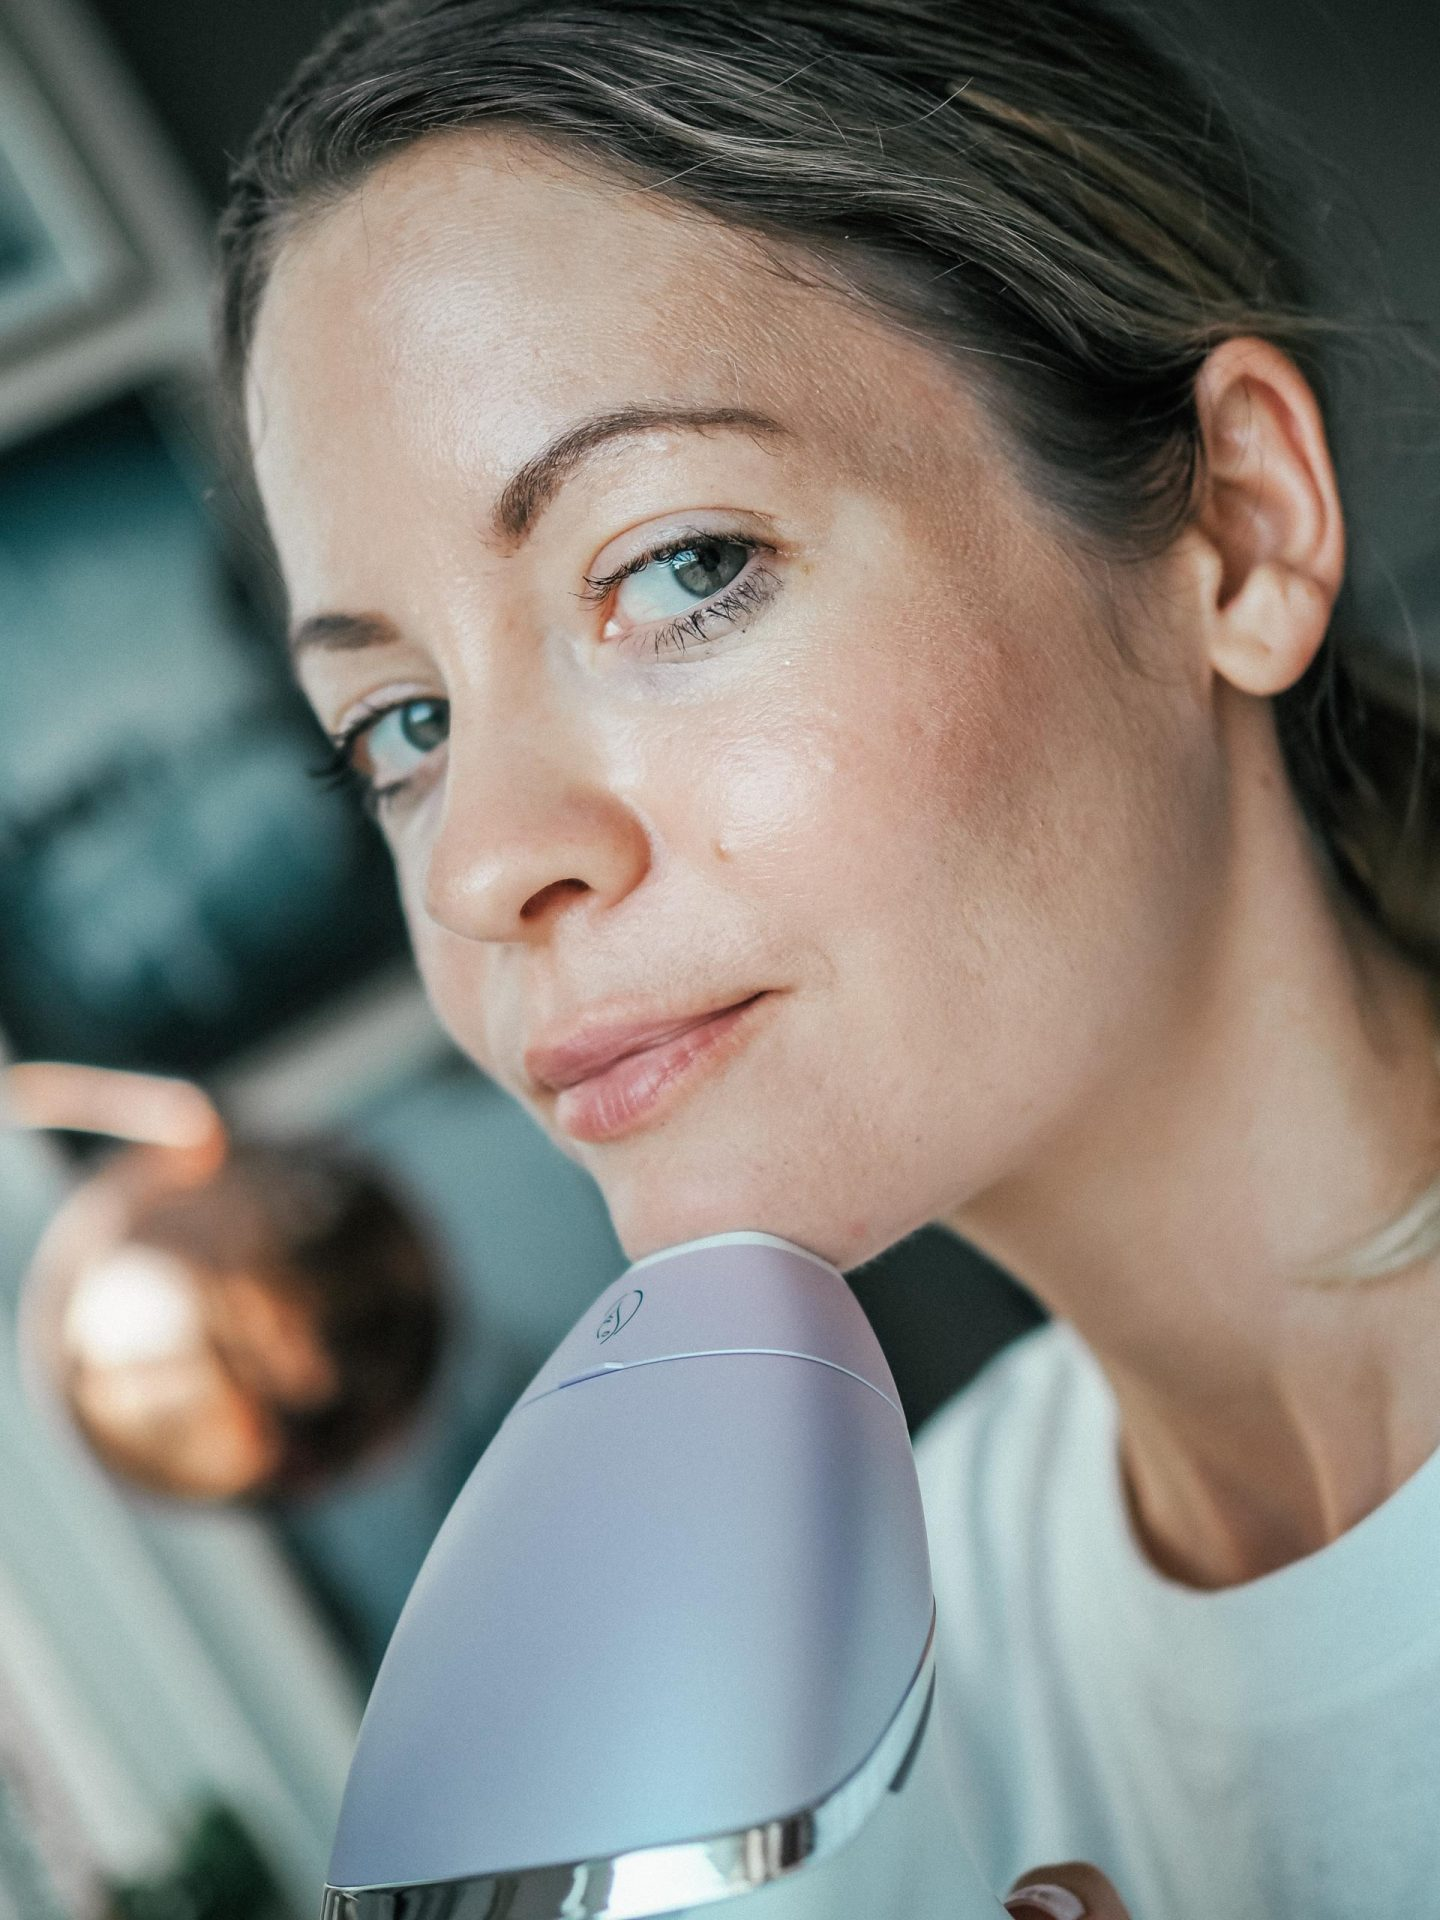 At-home IPL: Testing Out the New Philips Lumea Prestige